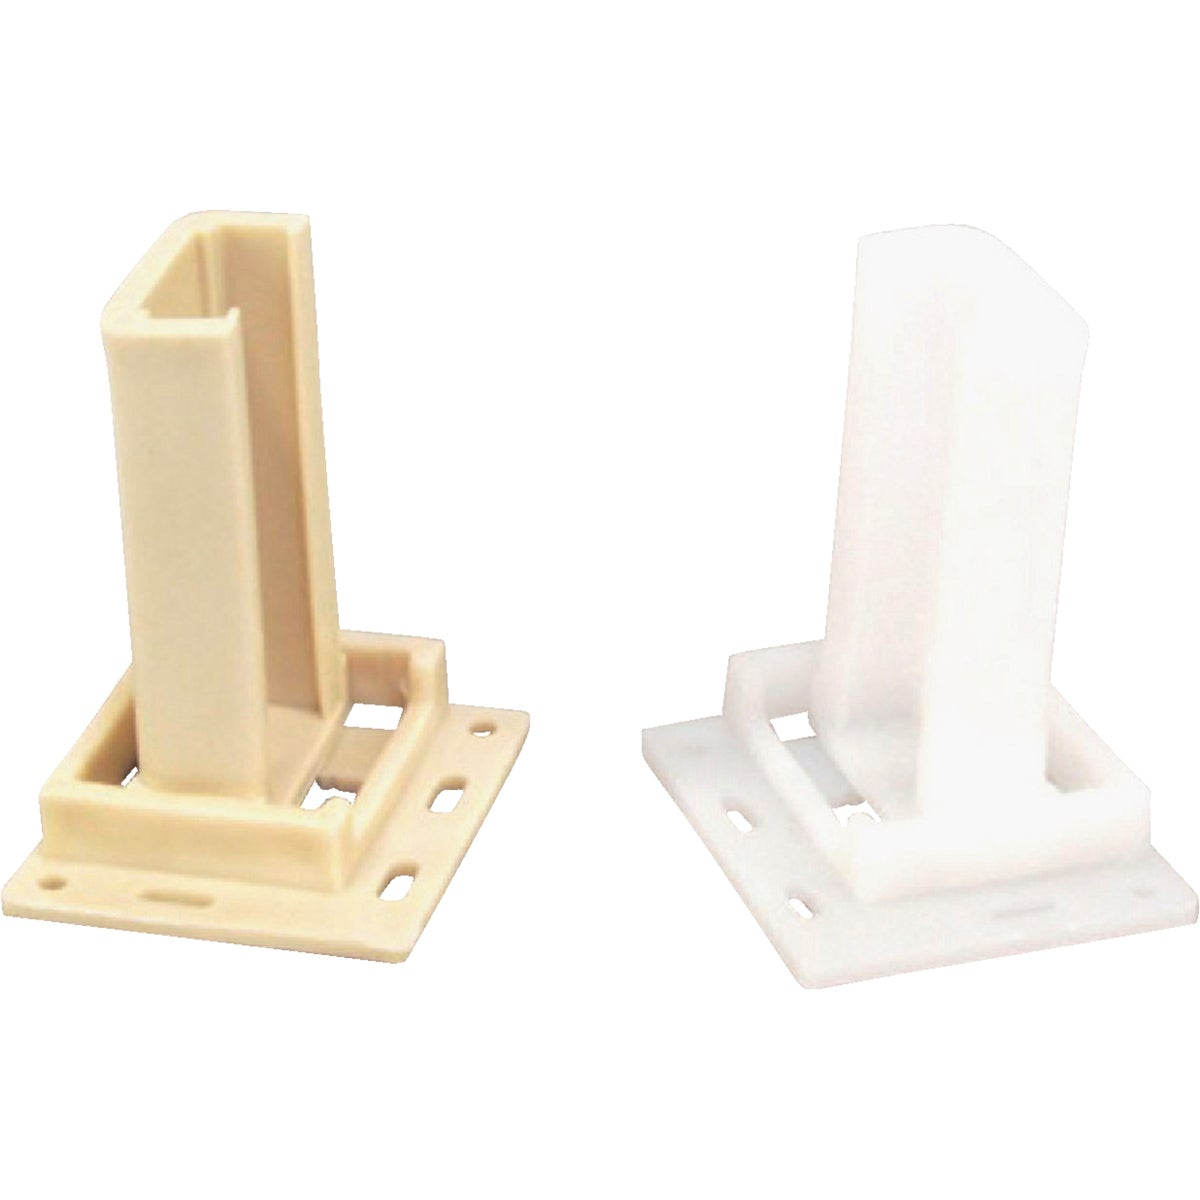 REAR DRAWER GUIDE - WP-9871C by U S Hardware